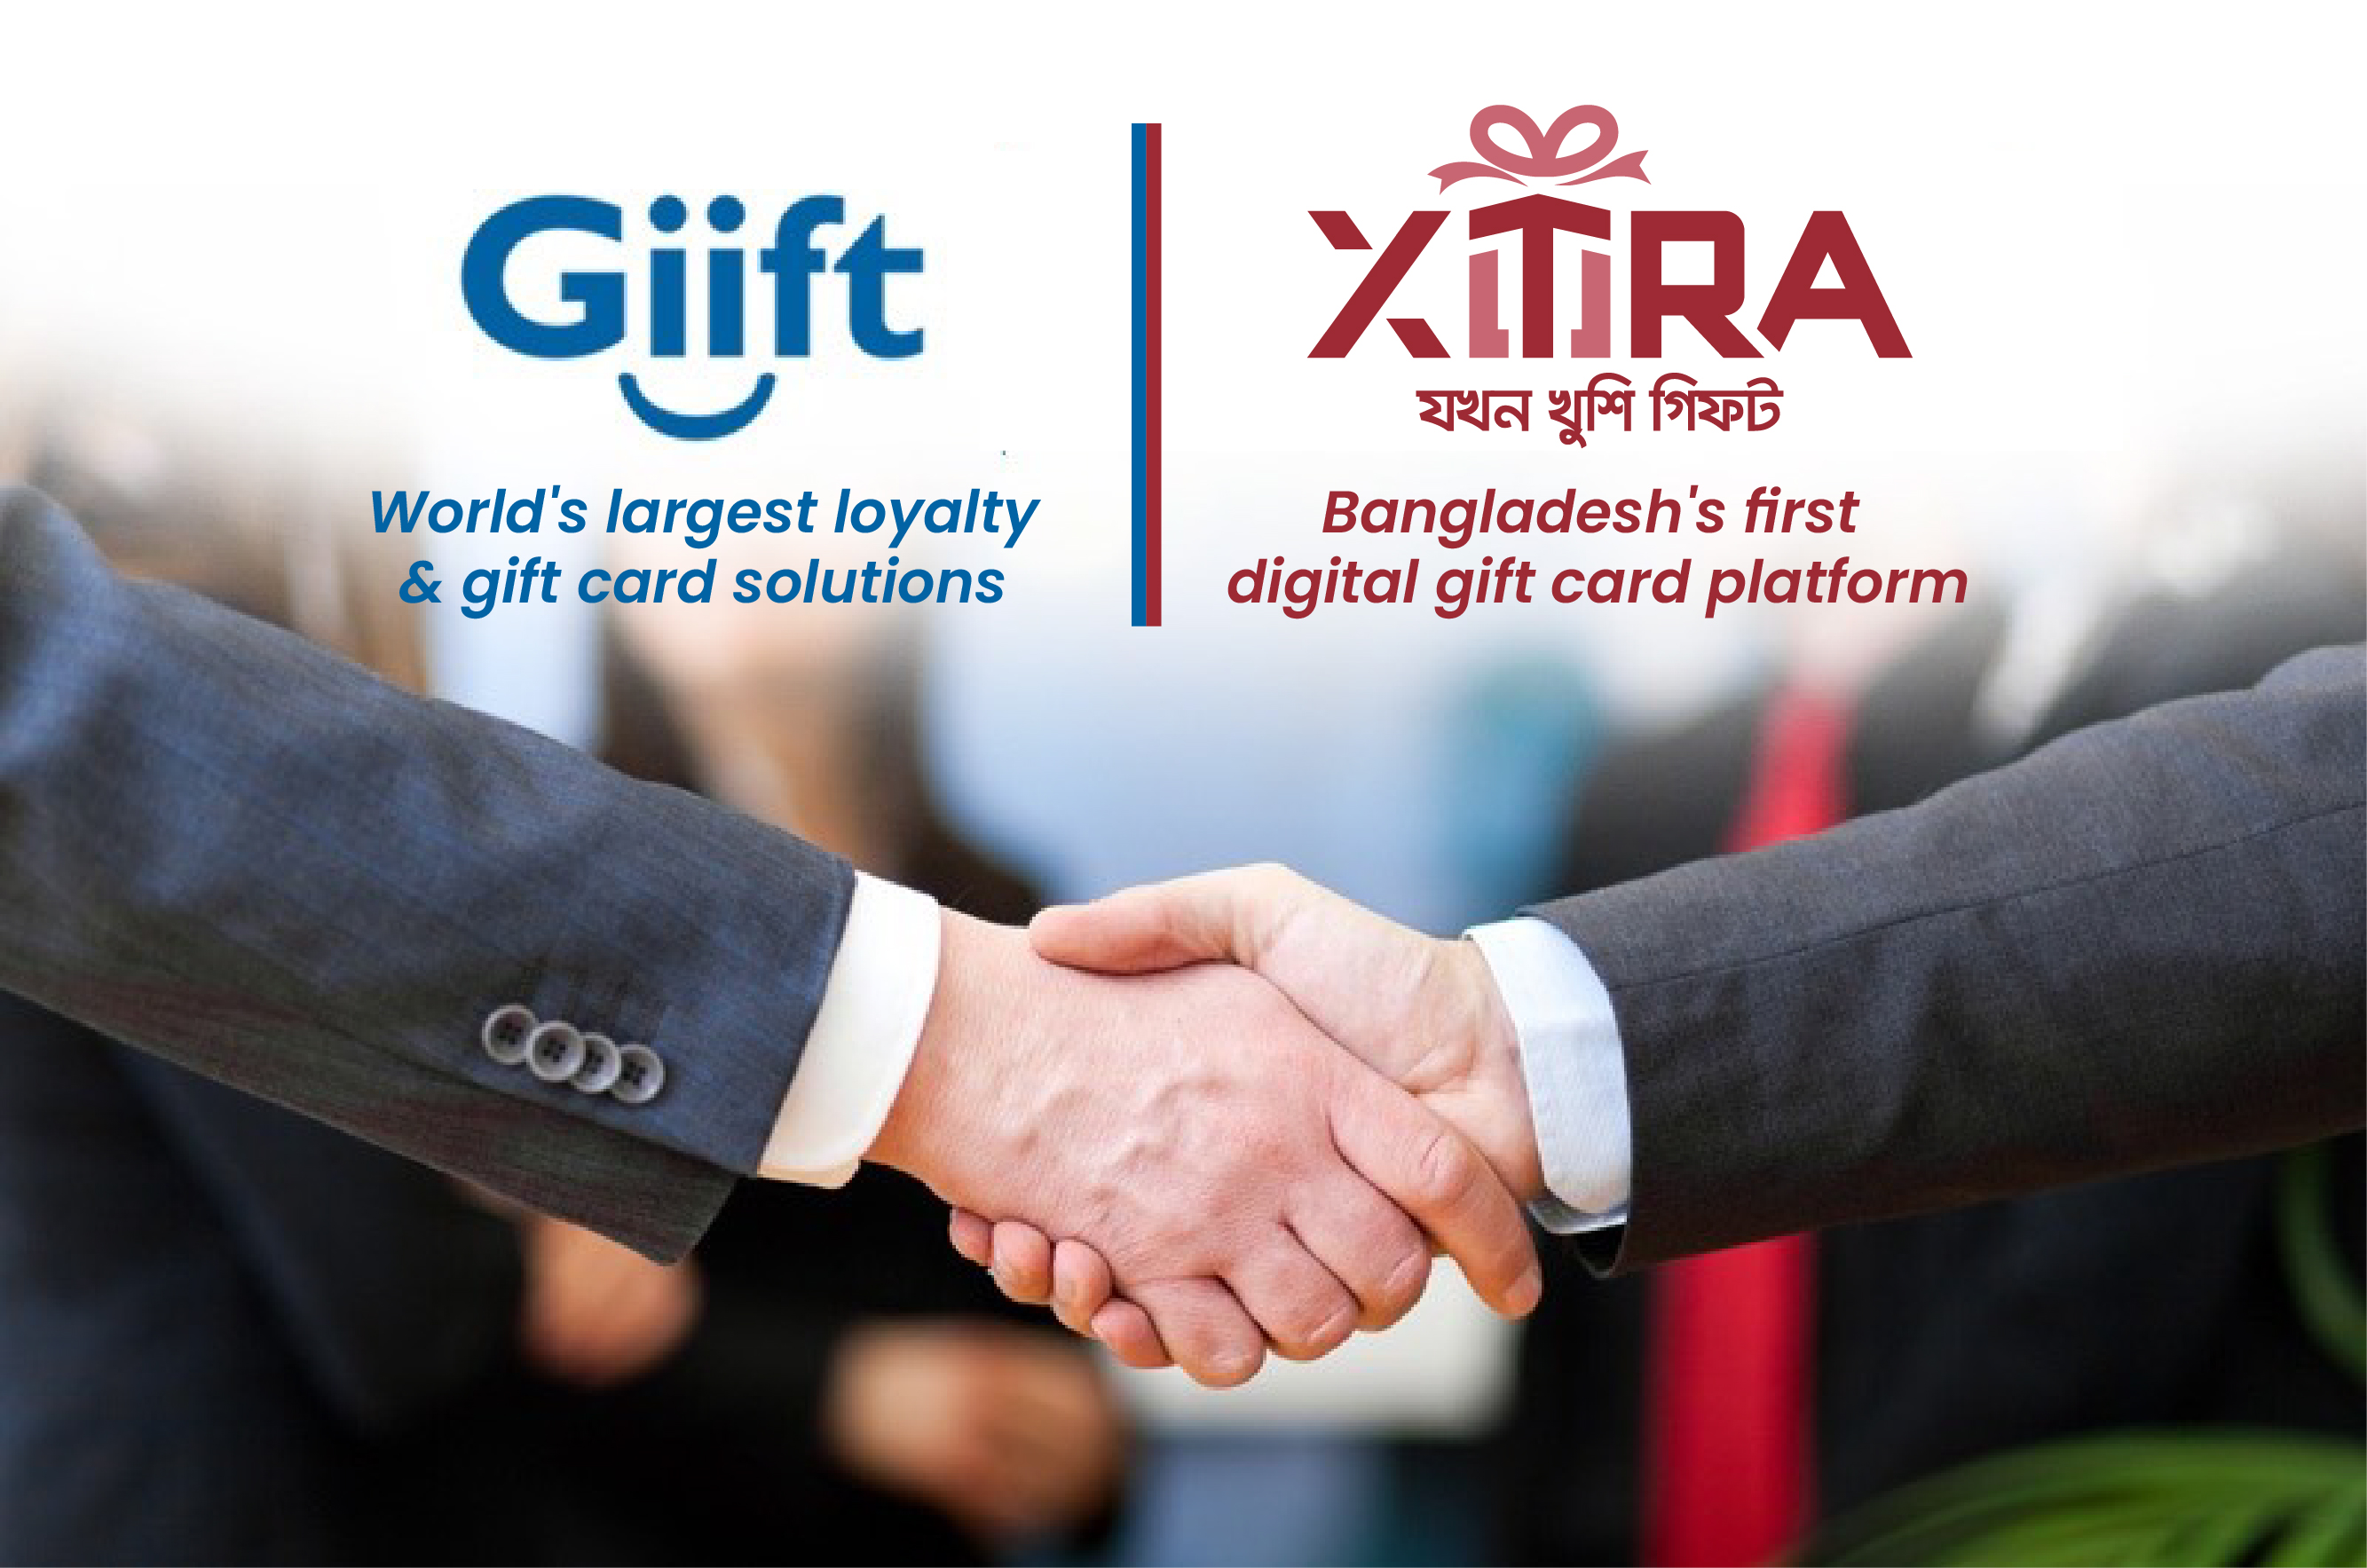 Giift ties up with Xtra, Bangladesh's leading gift card platform!